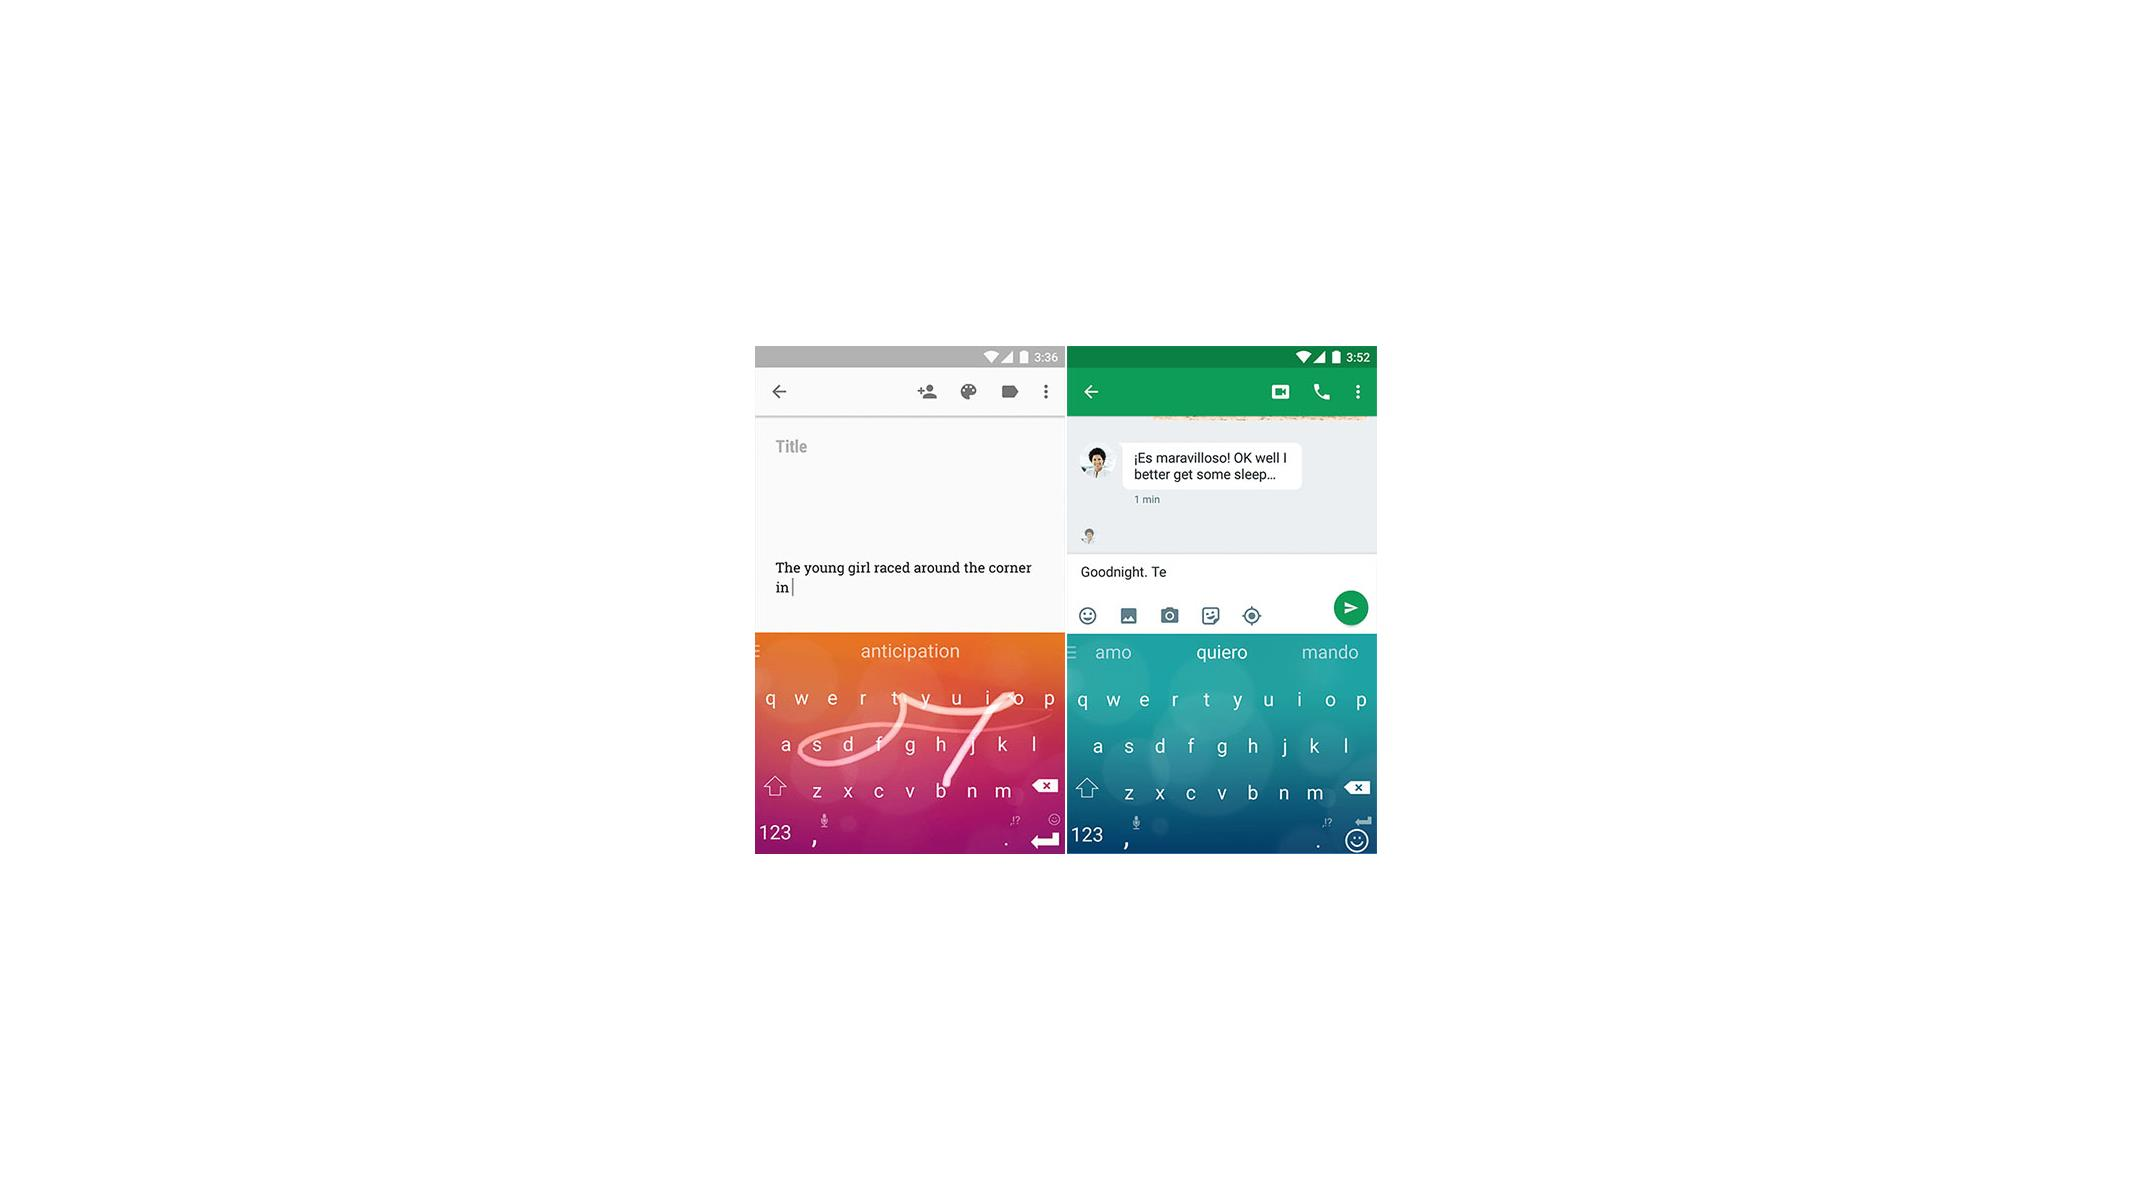 ce3fce69fd4 SwiftKey Bug Leaks Predicted Phrases, Phone Numbers And Email Addresses Of  Strangers | HotHardware